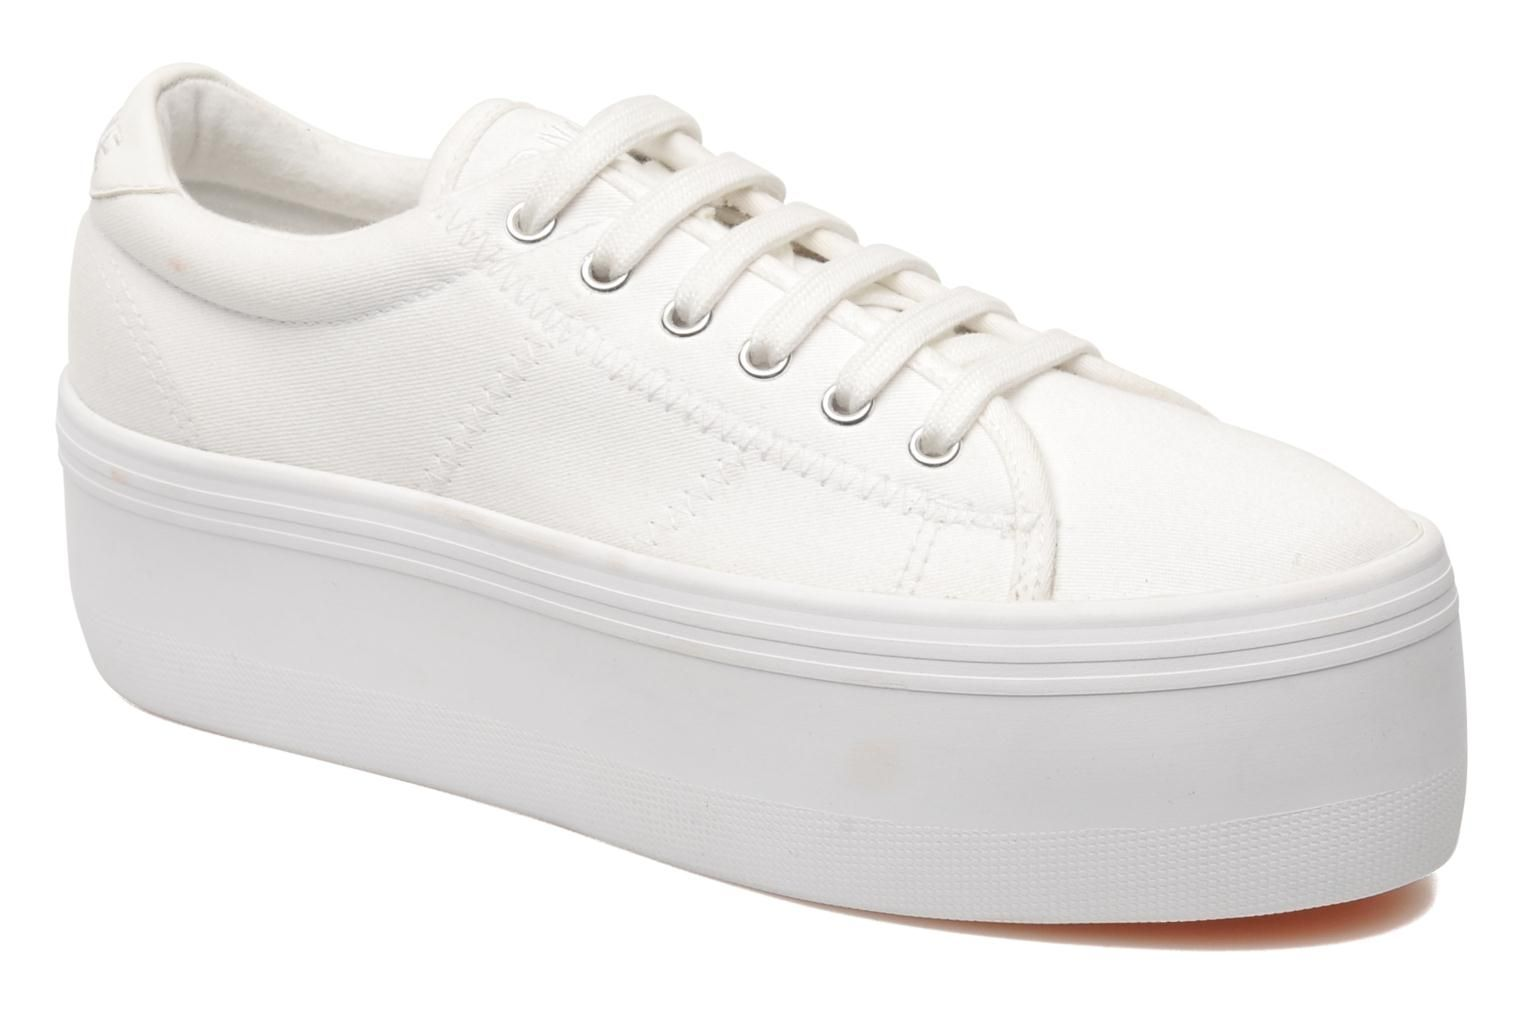 competitive price 4d874 5c8c5 King Sneaker by No Name (White)   Sarenza UK   Your Trainers King Sneaker